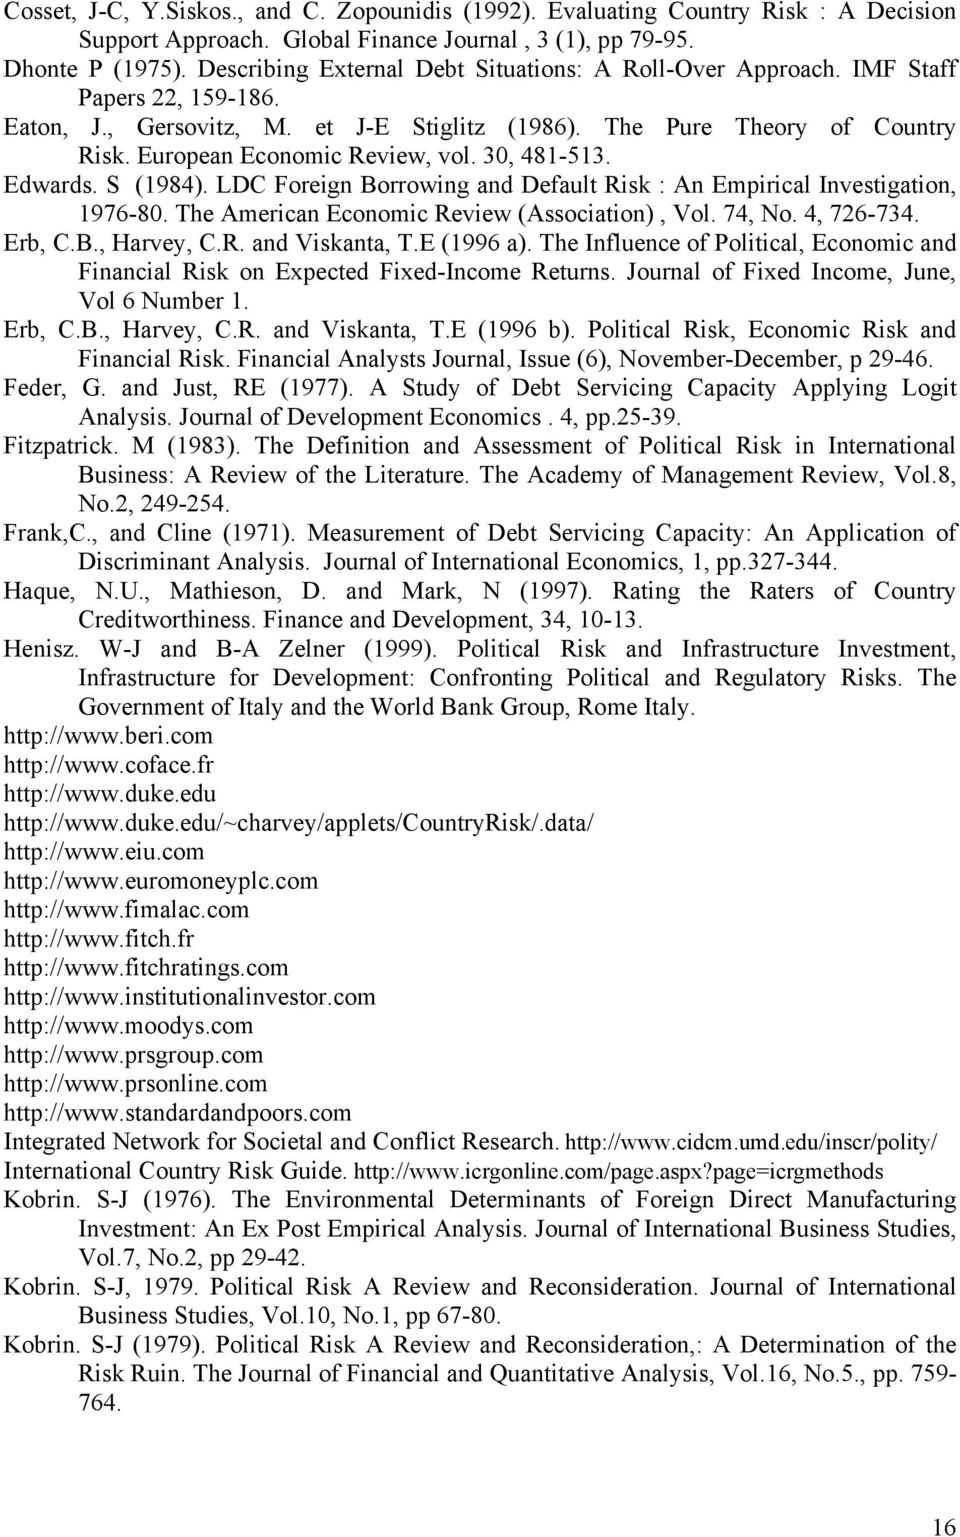 European Economic Review, vol. 30, 481-513. Edwards. S (1984). LDC Foreign Borrowing and Default Risk : An Empirical Investigation, 1976-80. The American Economic Review (Association), Vol. 74, No.